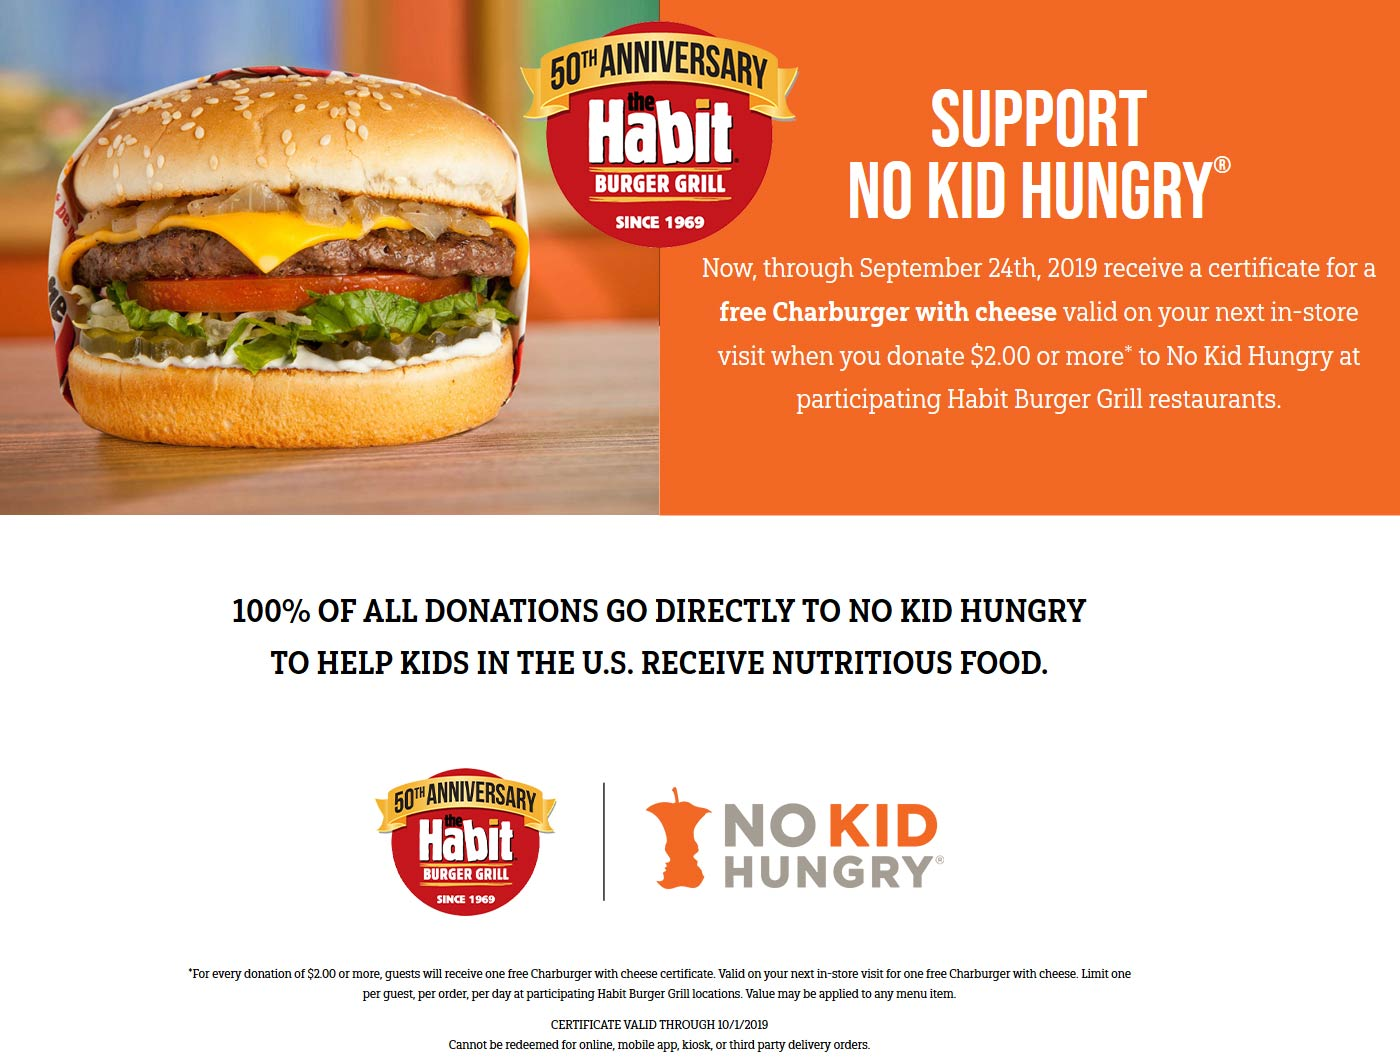 Habit Coupon November 2019 Free cheeseburger with $2 donation at Habit burger grill